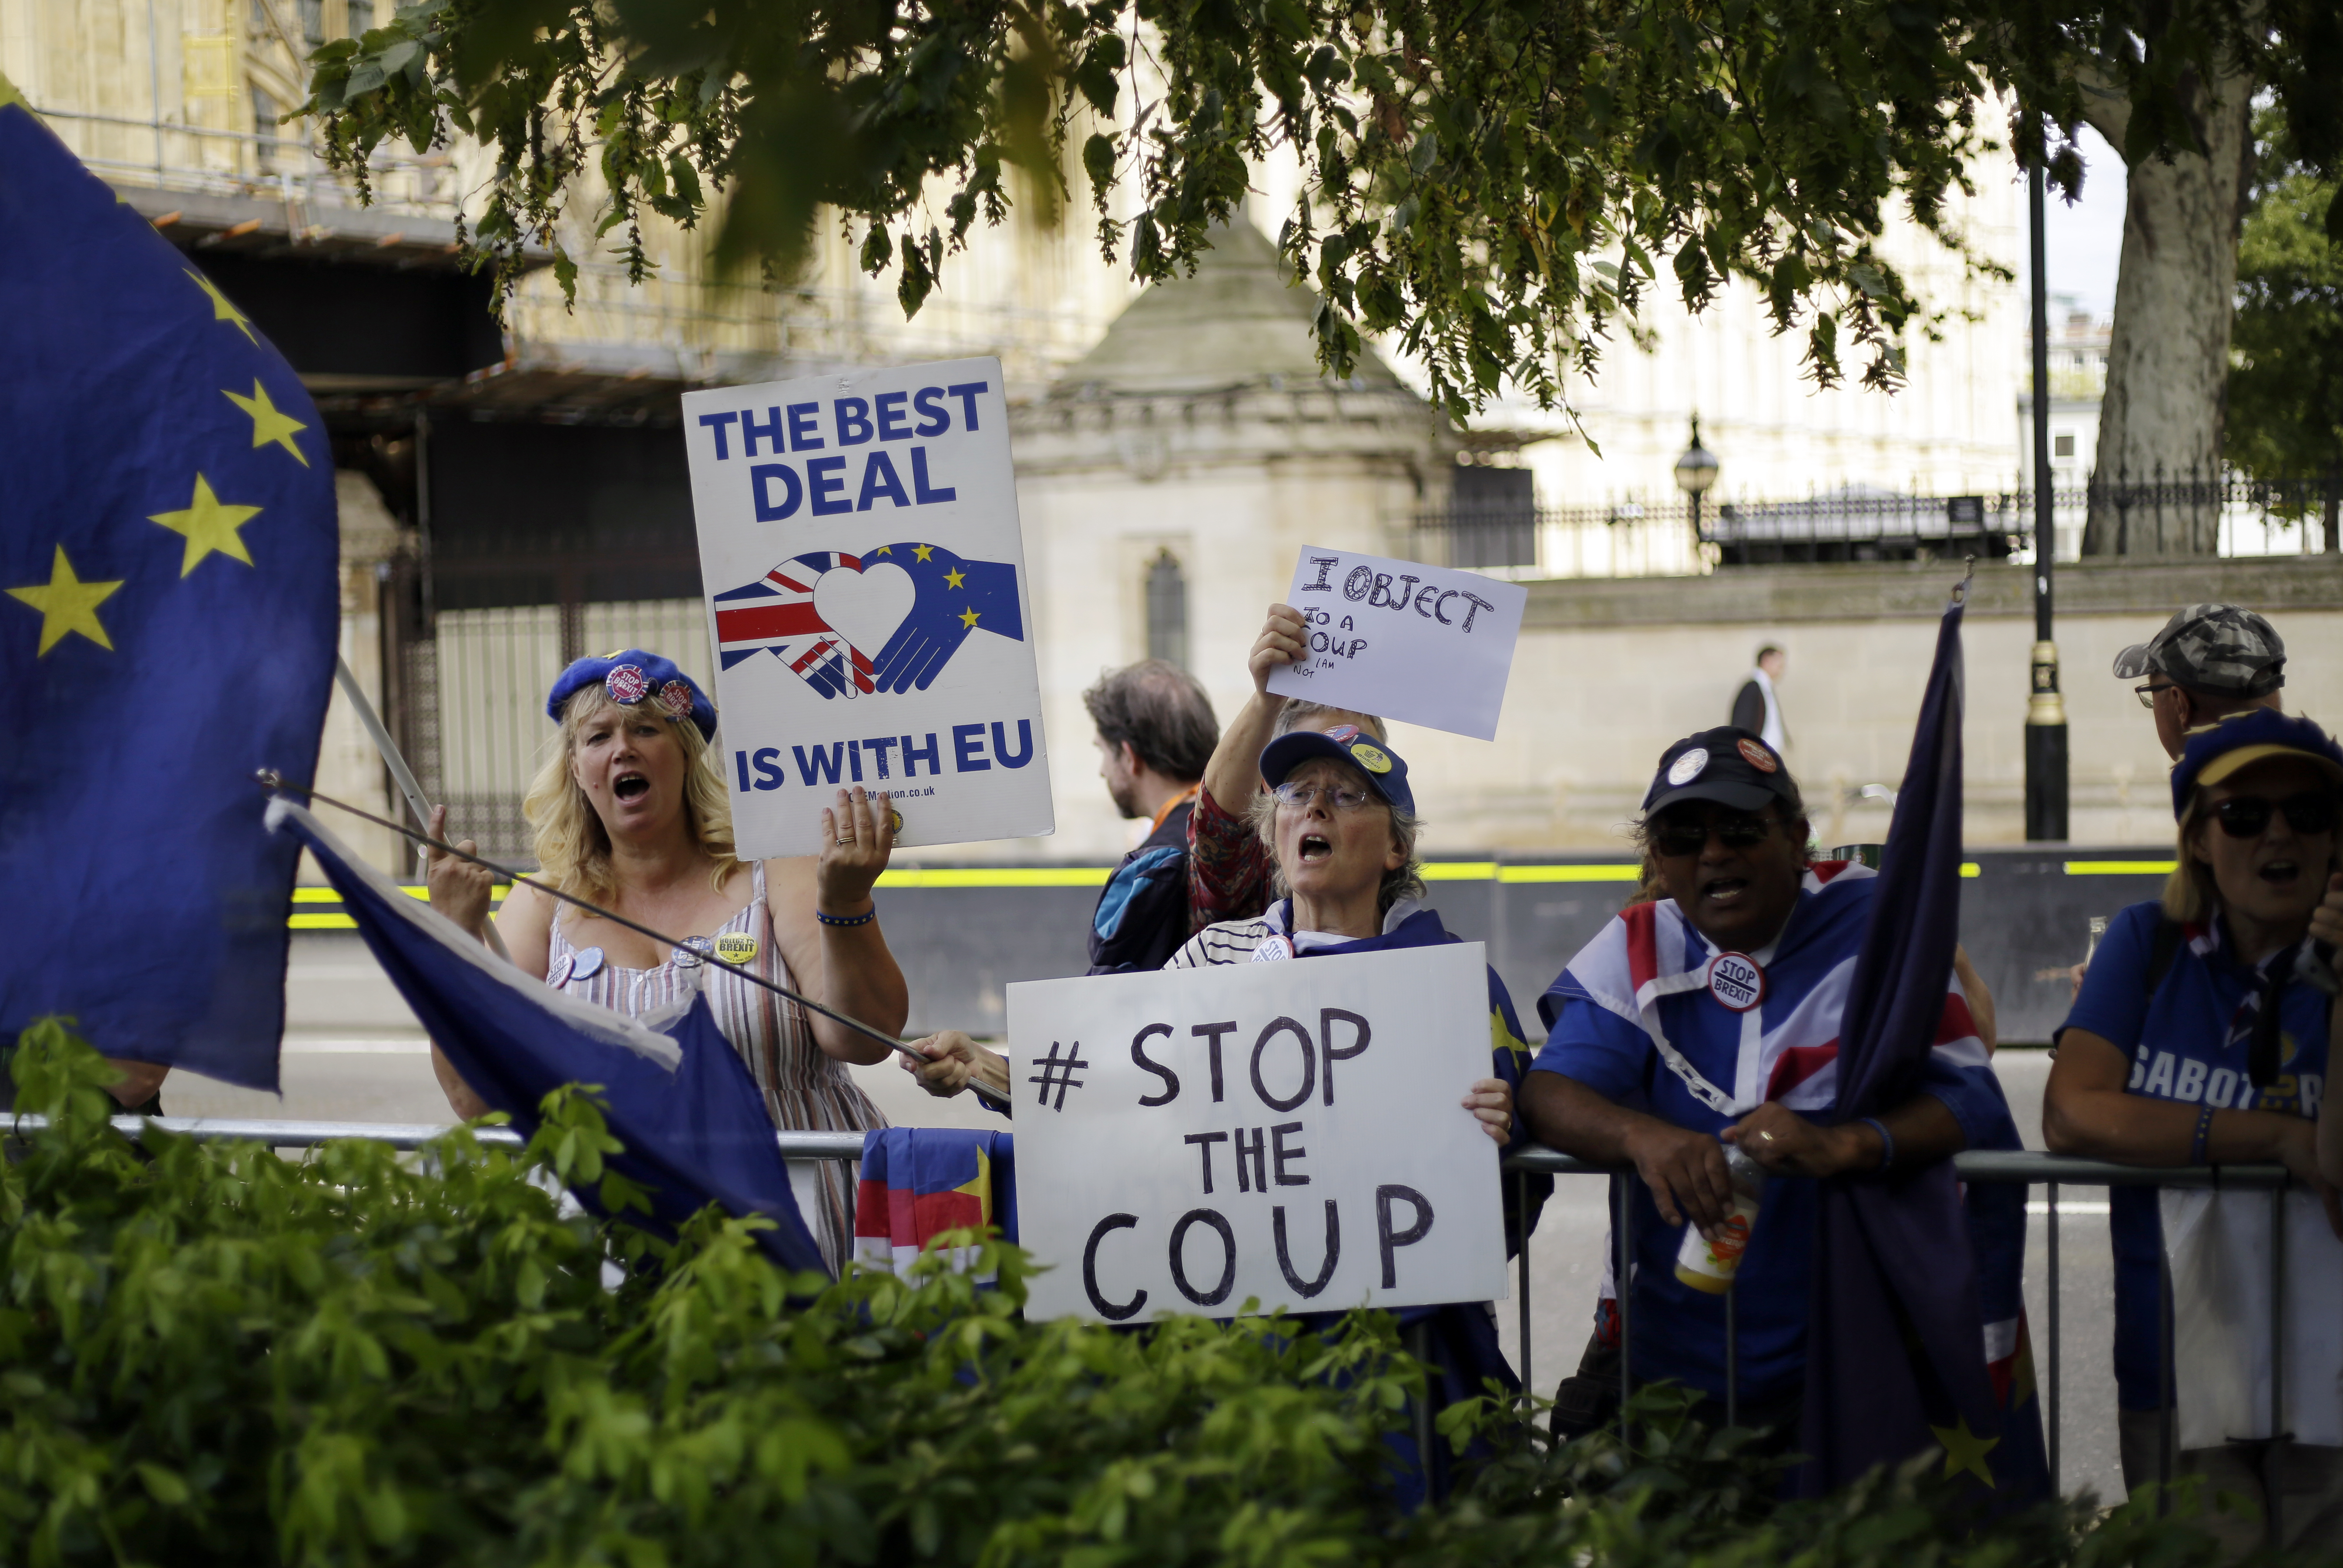 Anti-Brexit supporters wave flags and hold signs near the Houses of Parliament in central London, Wednesday, Aug. 28, 2019. British Prime Minister Boris Johnson asked Queen Elizabeth II on Wednesday to suspend Parliament, throwing down the gauntlet to his critics and causing outrage among opposition leaders who will have even less time to thwart a no-deal Brexit. (AP Photo/Matt Dunham)